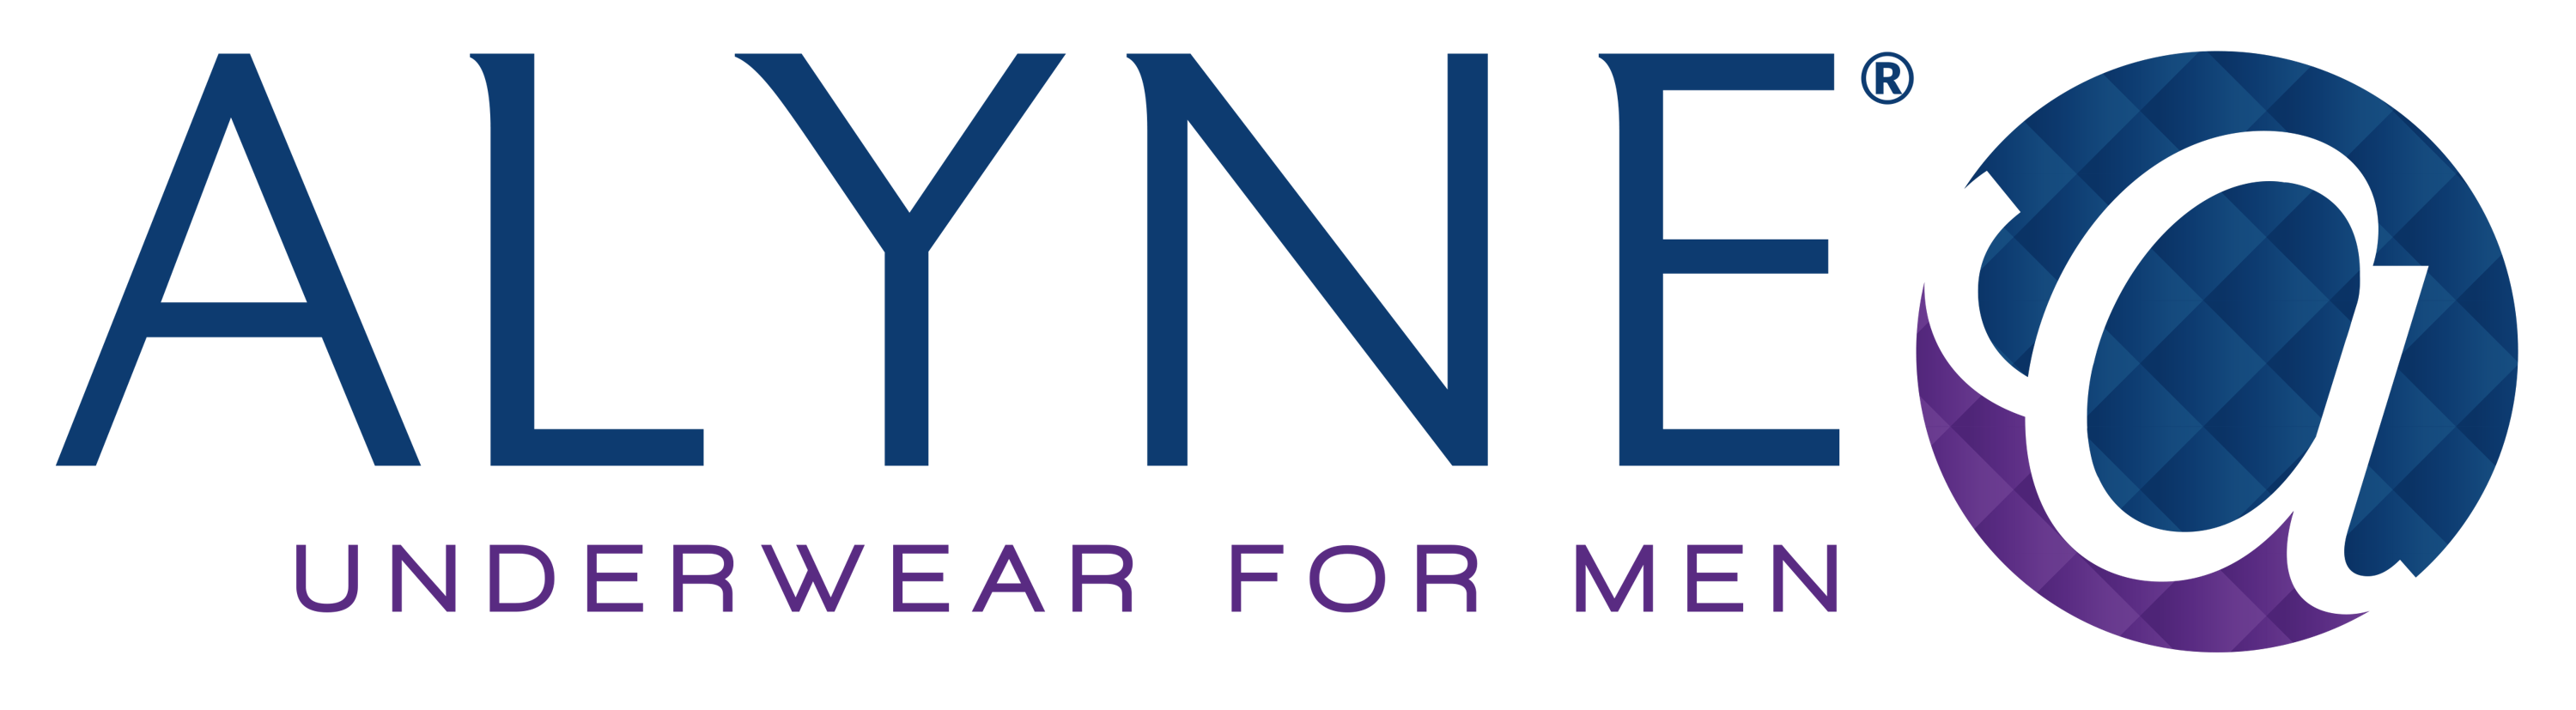 Alyne underwear for men